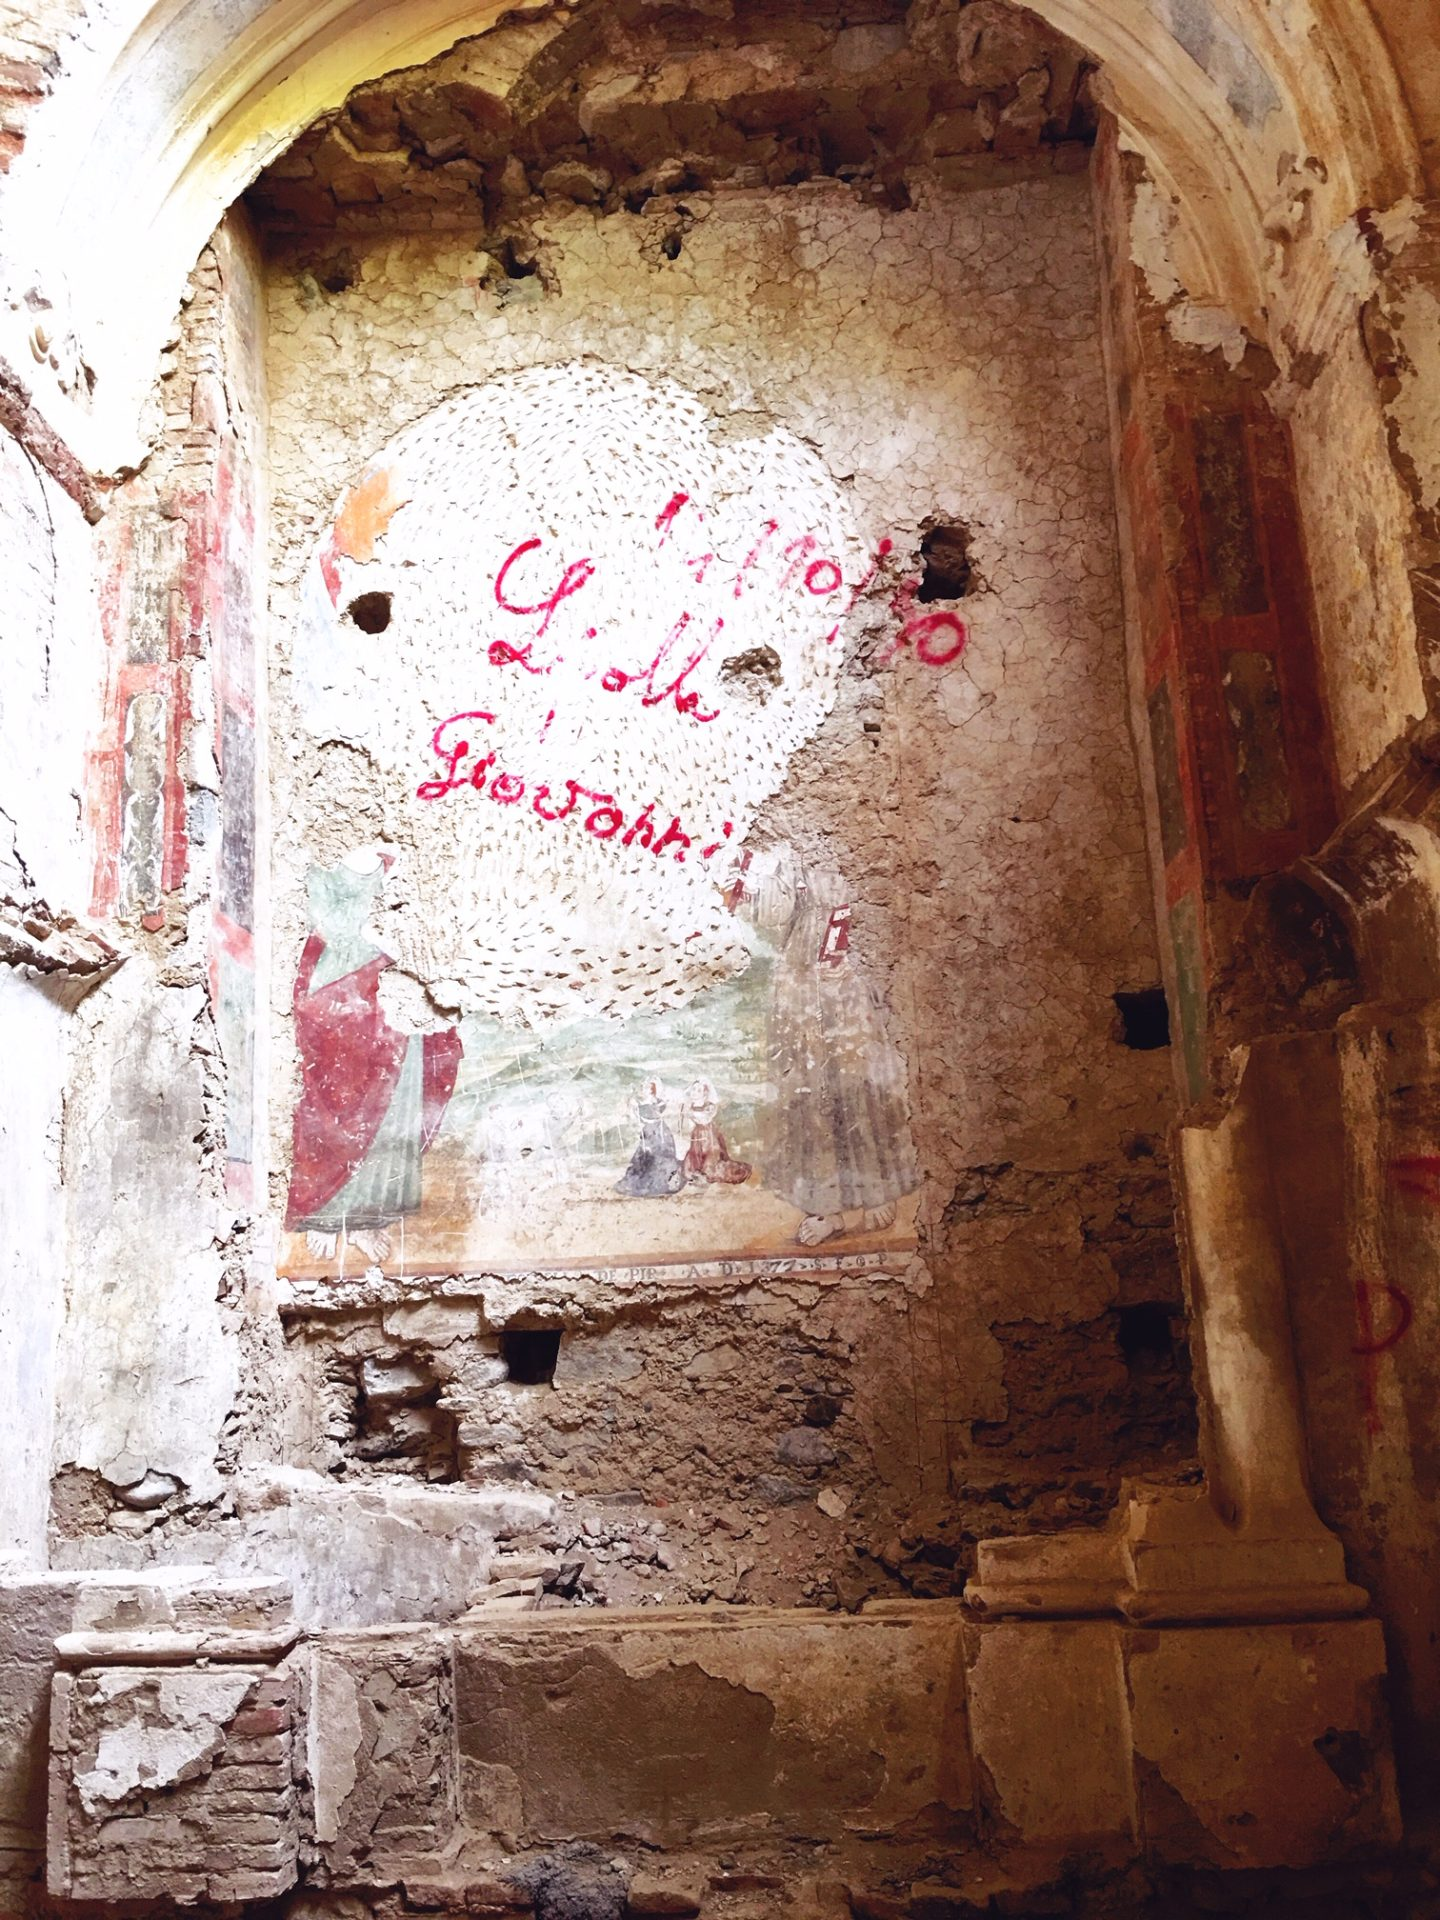 hidden frescoes in the abandoned church at the Convento San Francesco in Tursi, basilicata